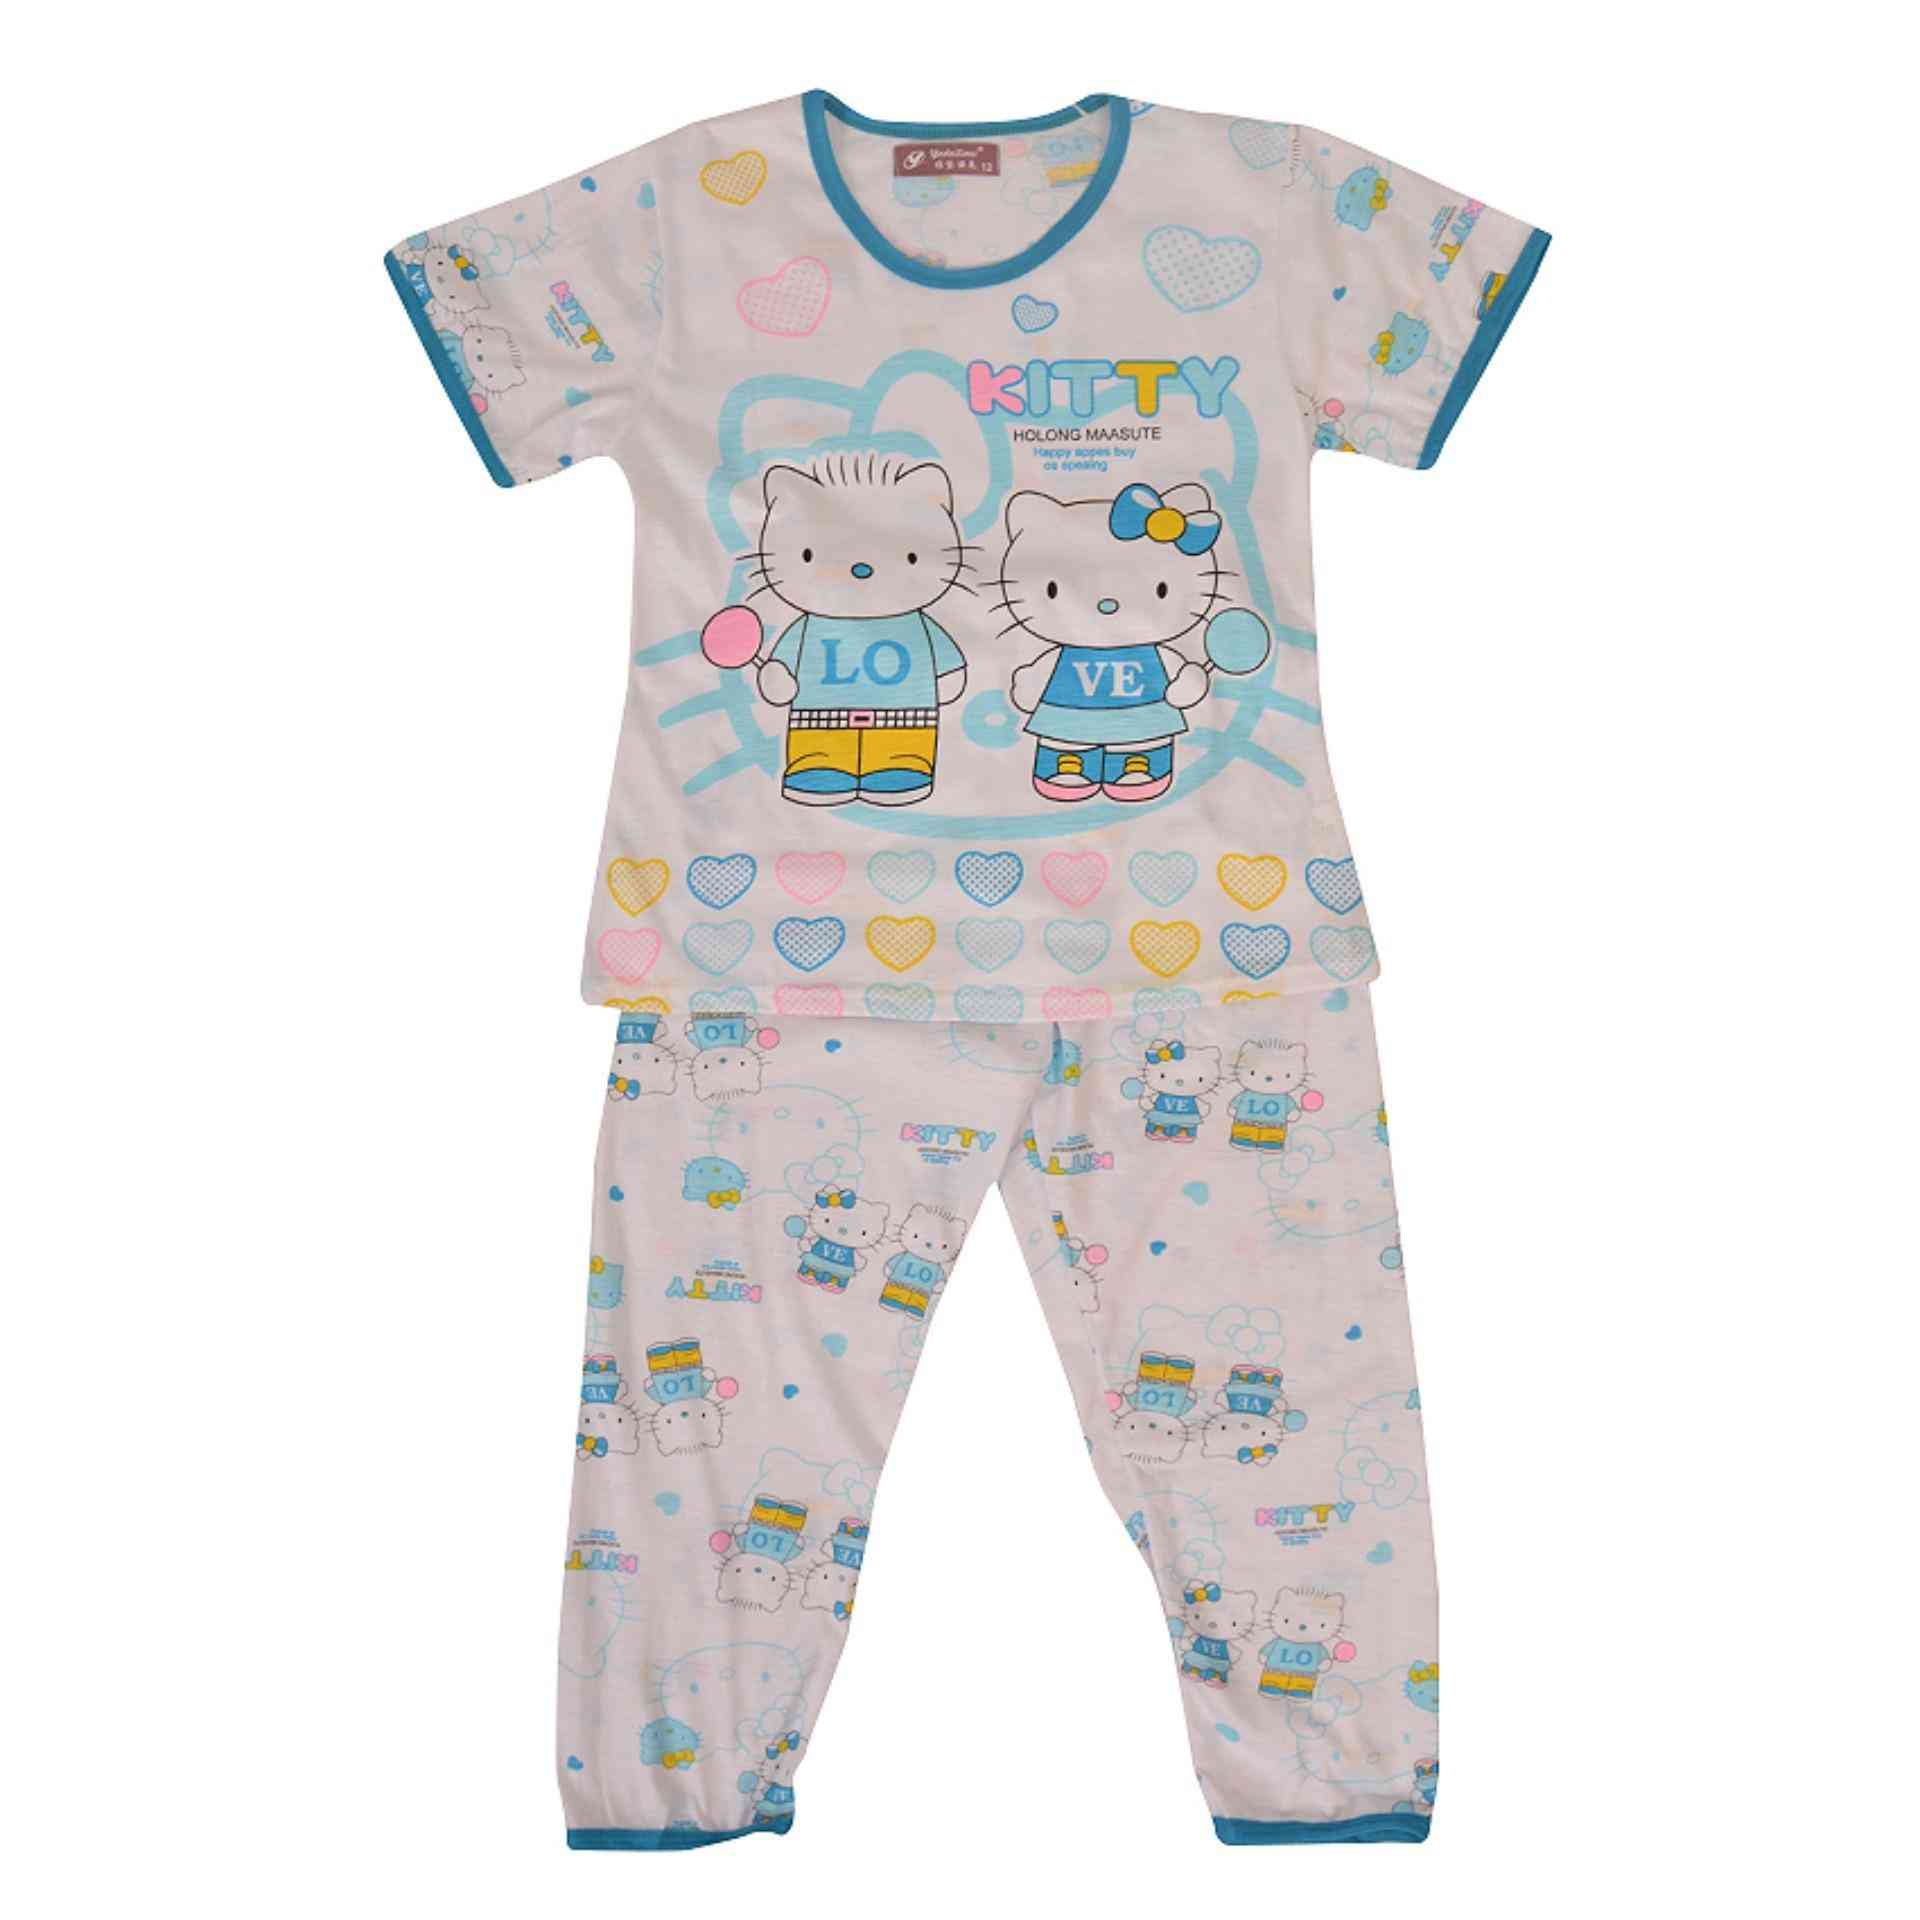 Pack of 2 Pure Cotton Night Suit (Pajama + Tshirt) for Girls - Kitty